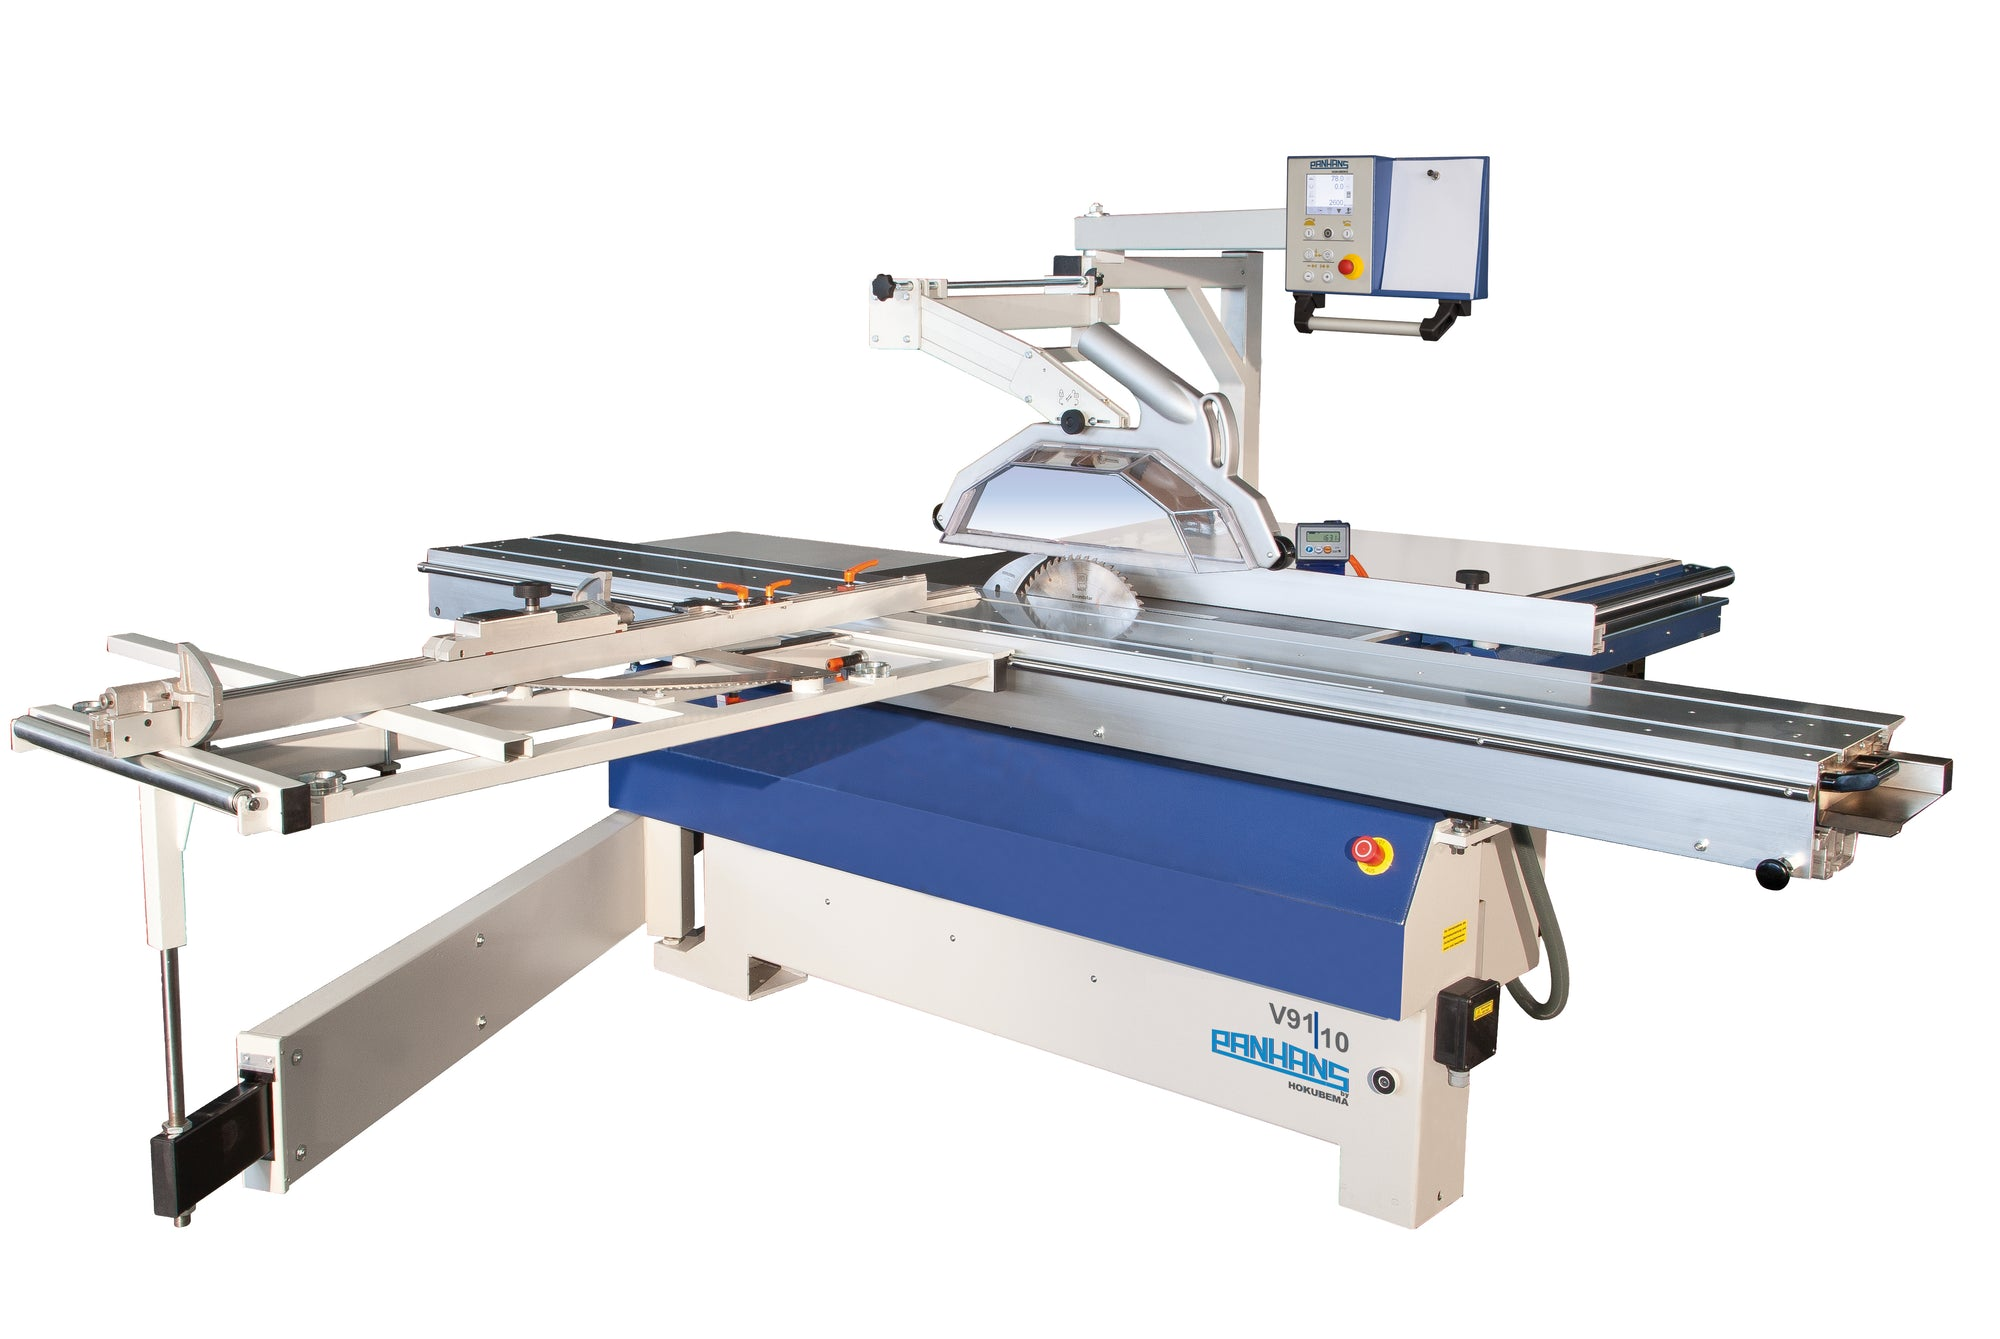 Panhans V91/10 Double Tilting Panel Saw